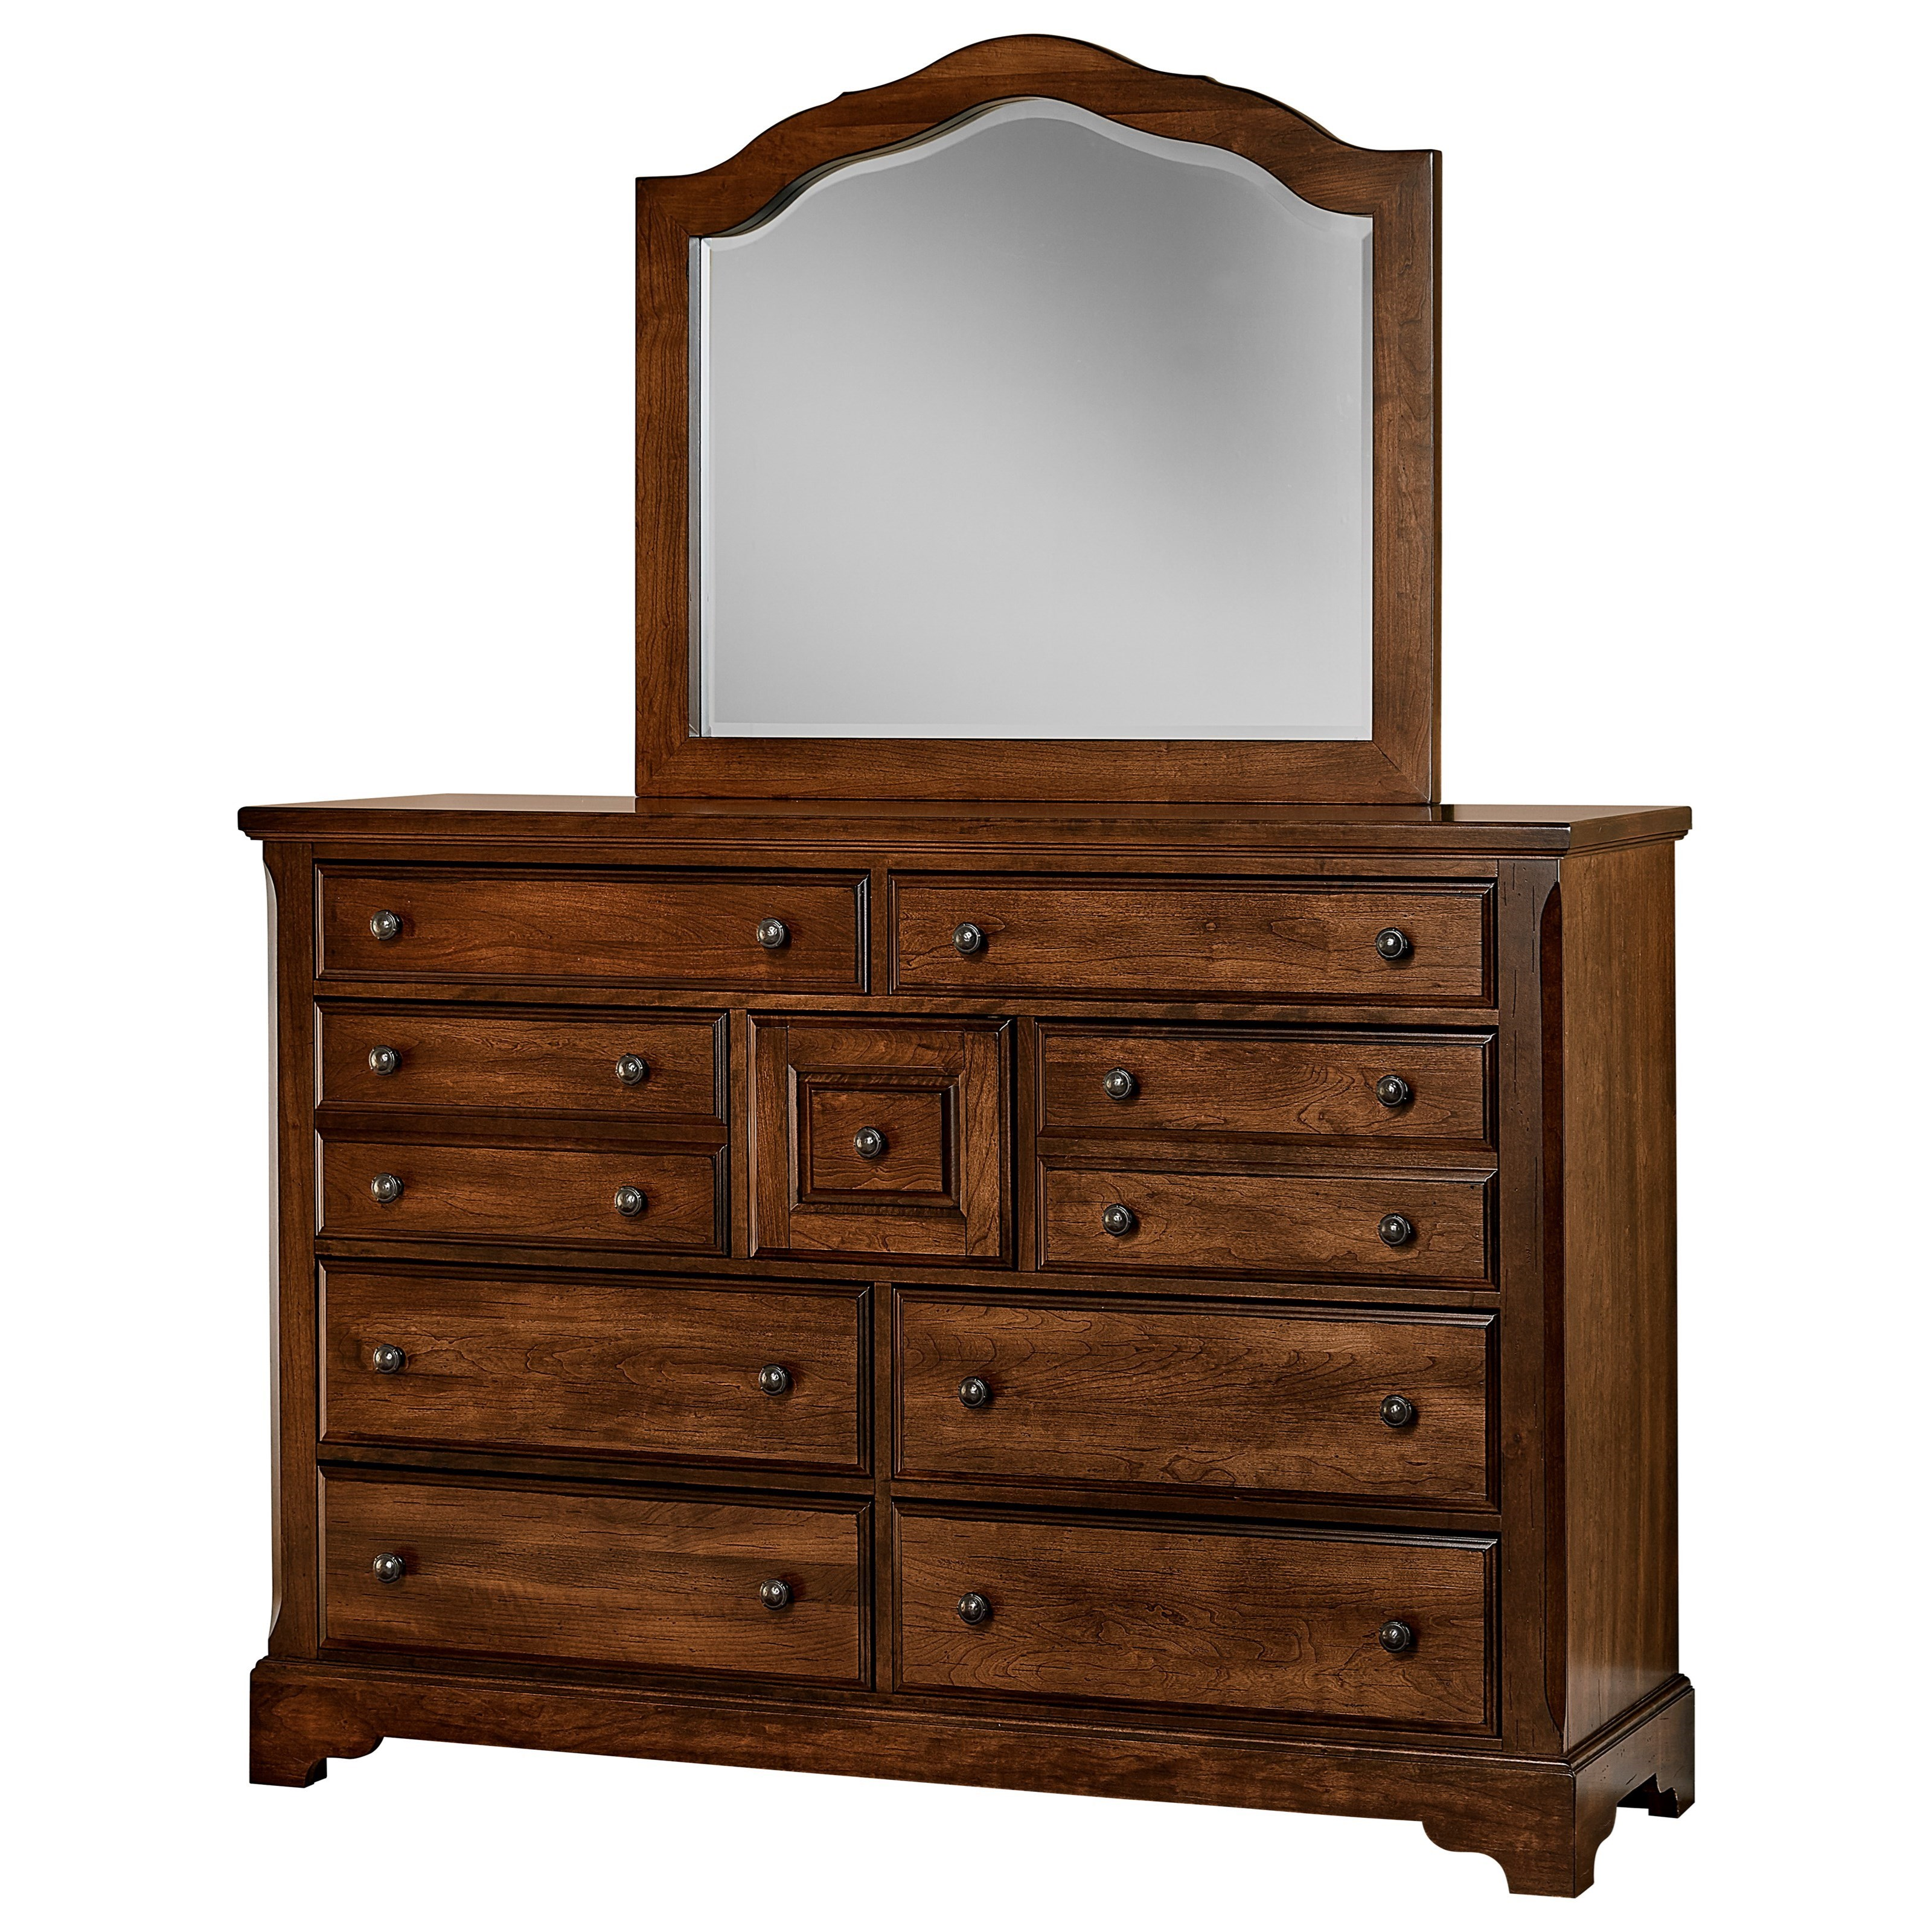 Artisan Choices Villa Triple Dresser & Arched Mirror by Artisan & Post at Johnny Janosik